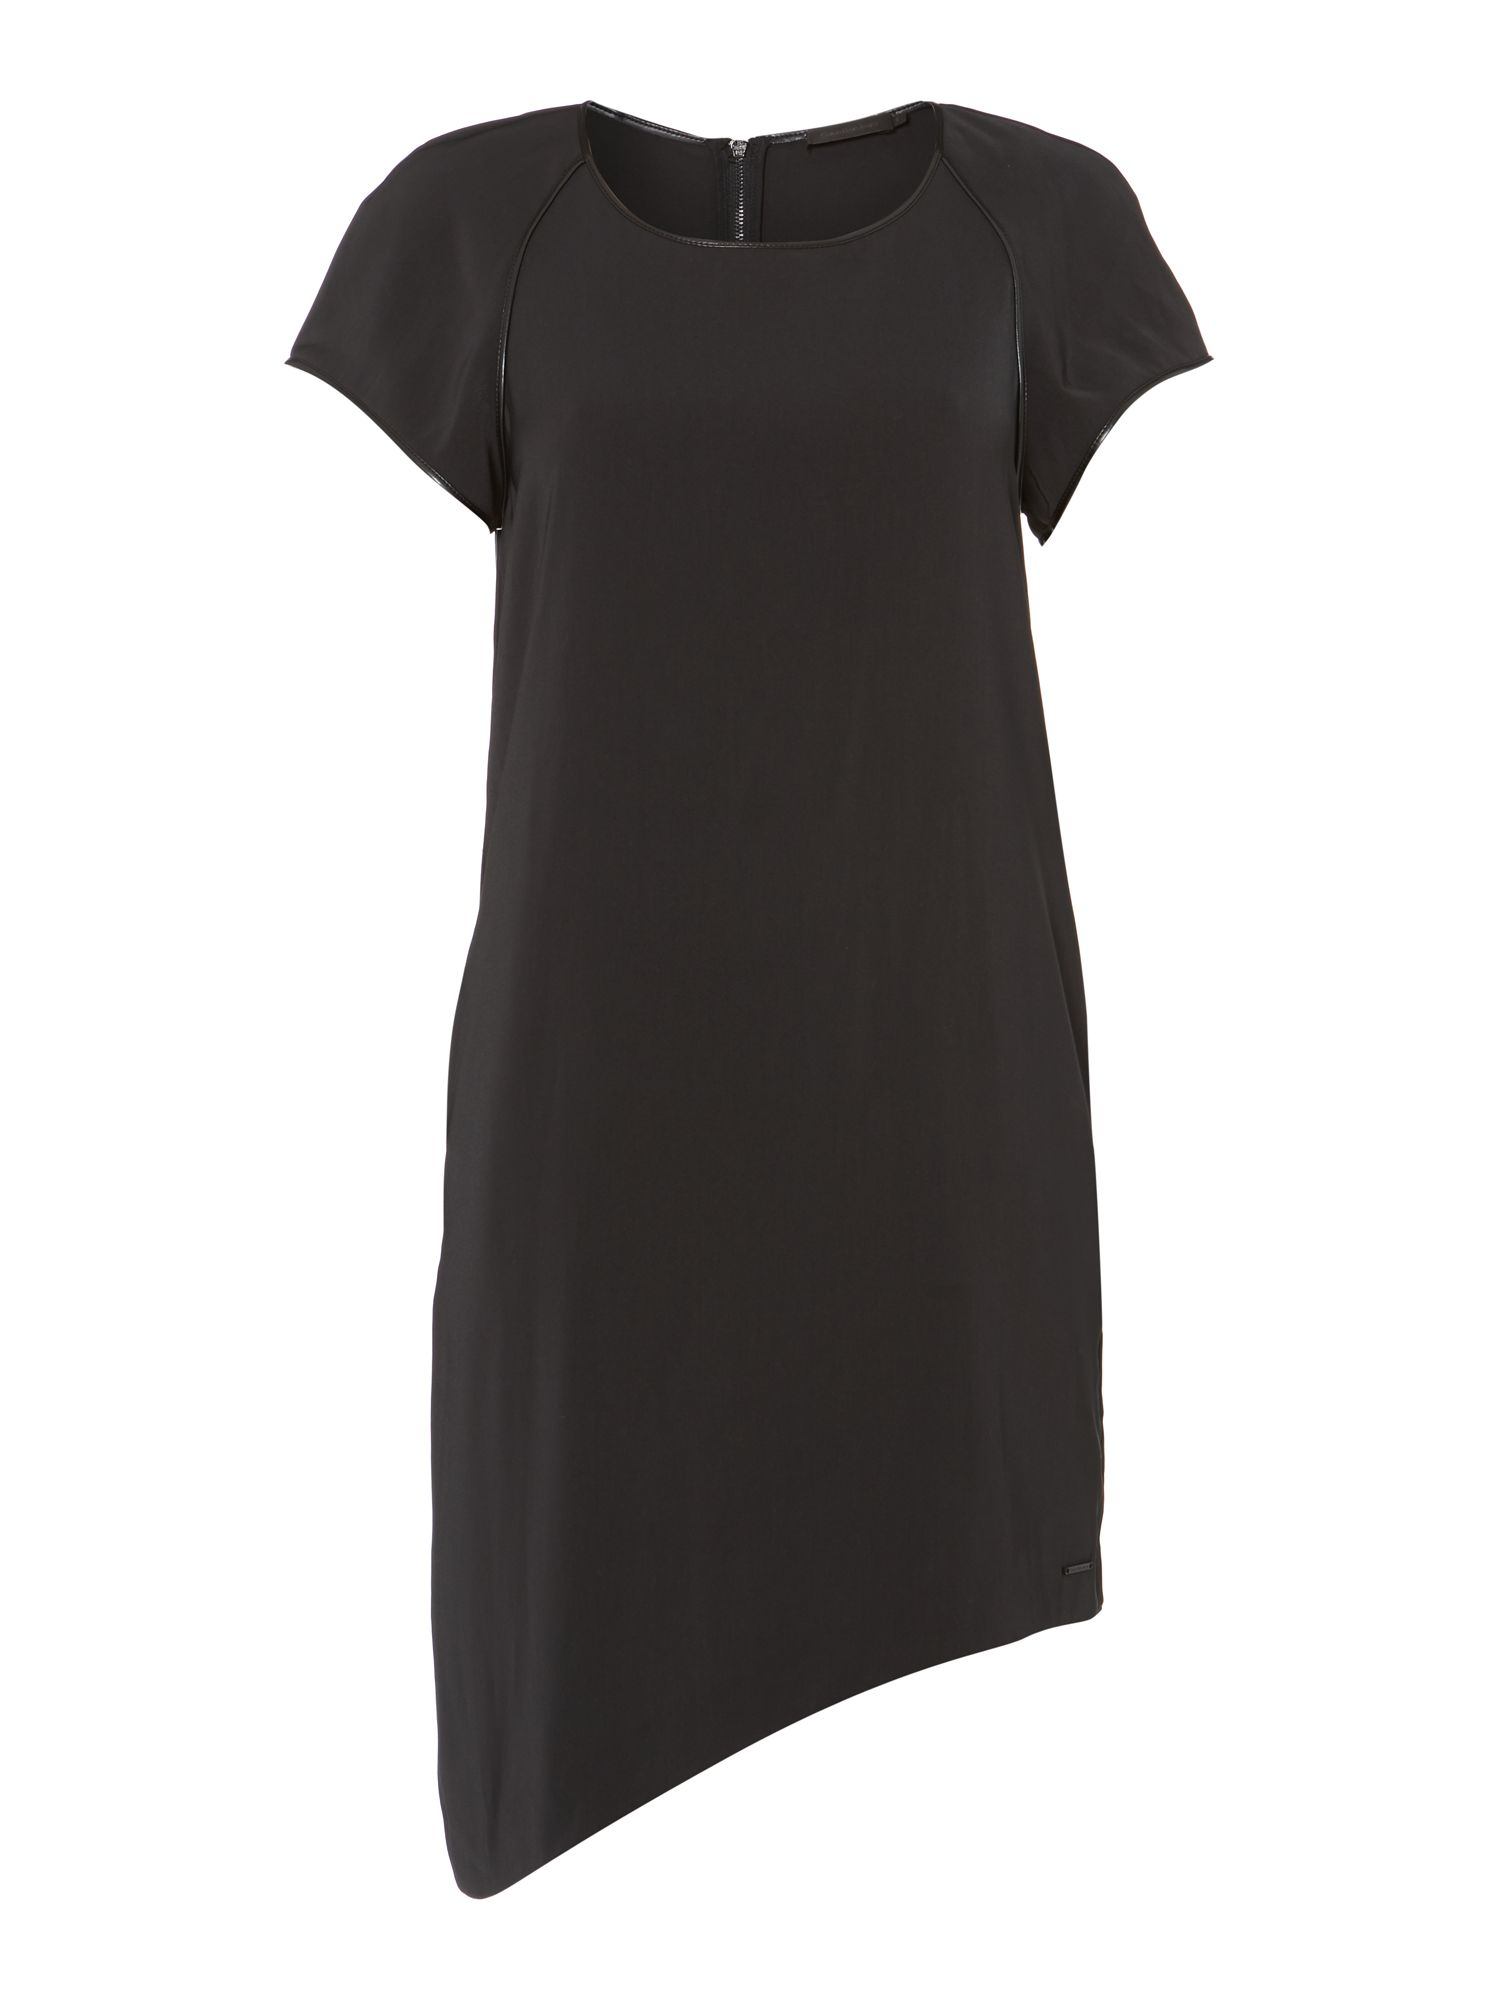 Dolly capped sleeve dress in metorite